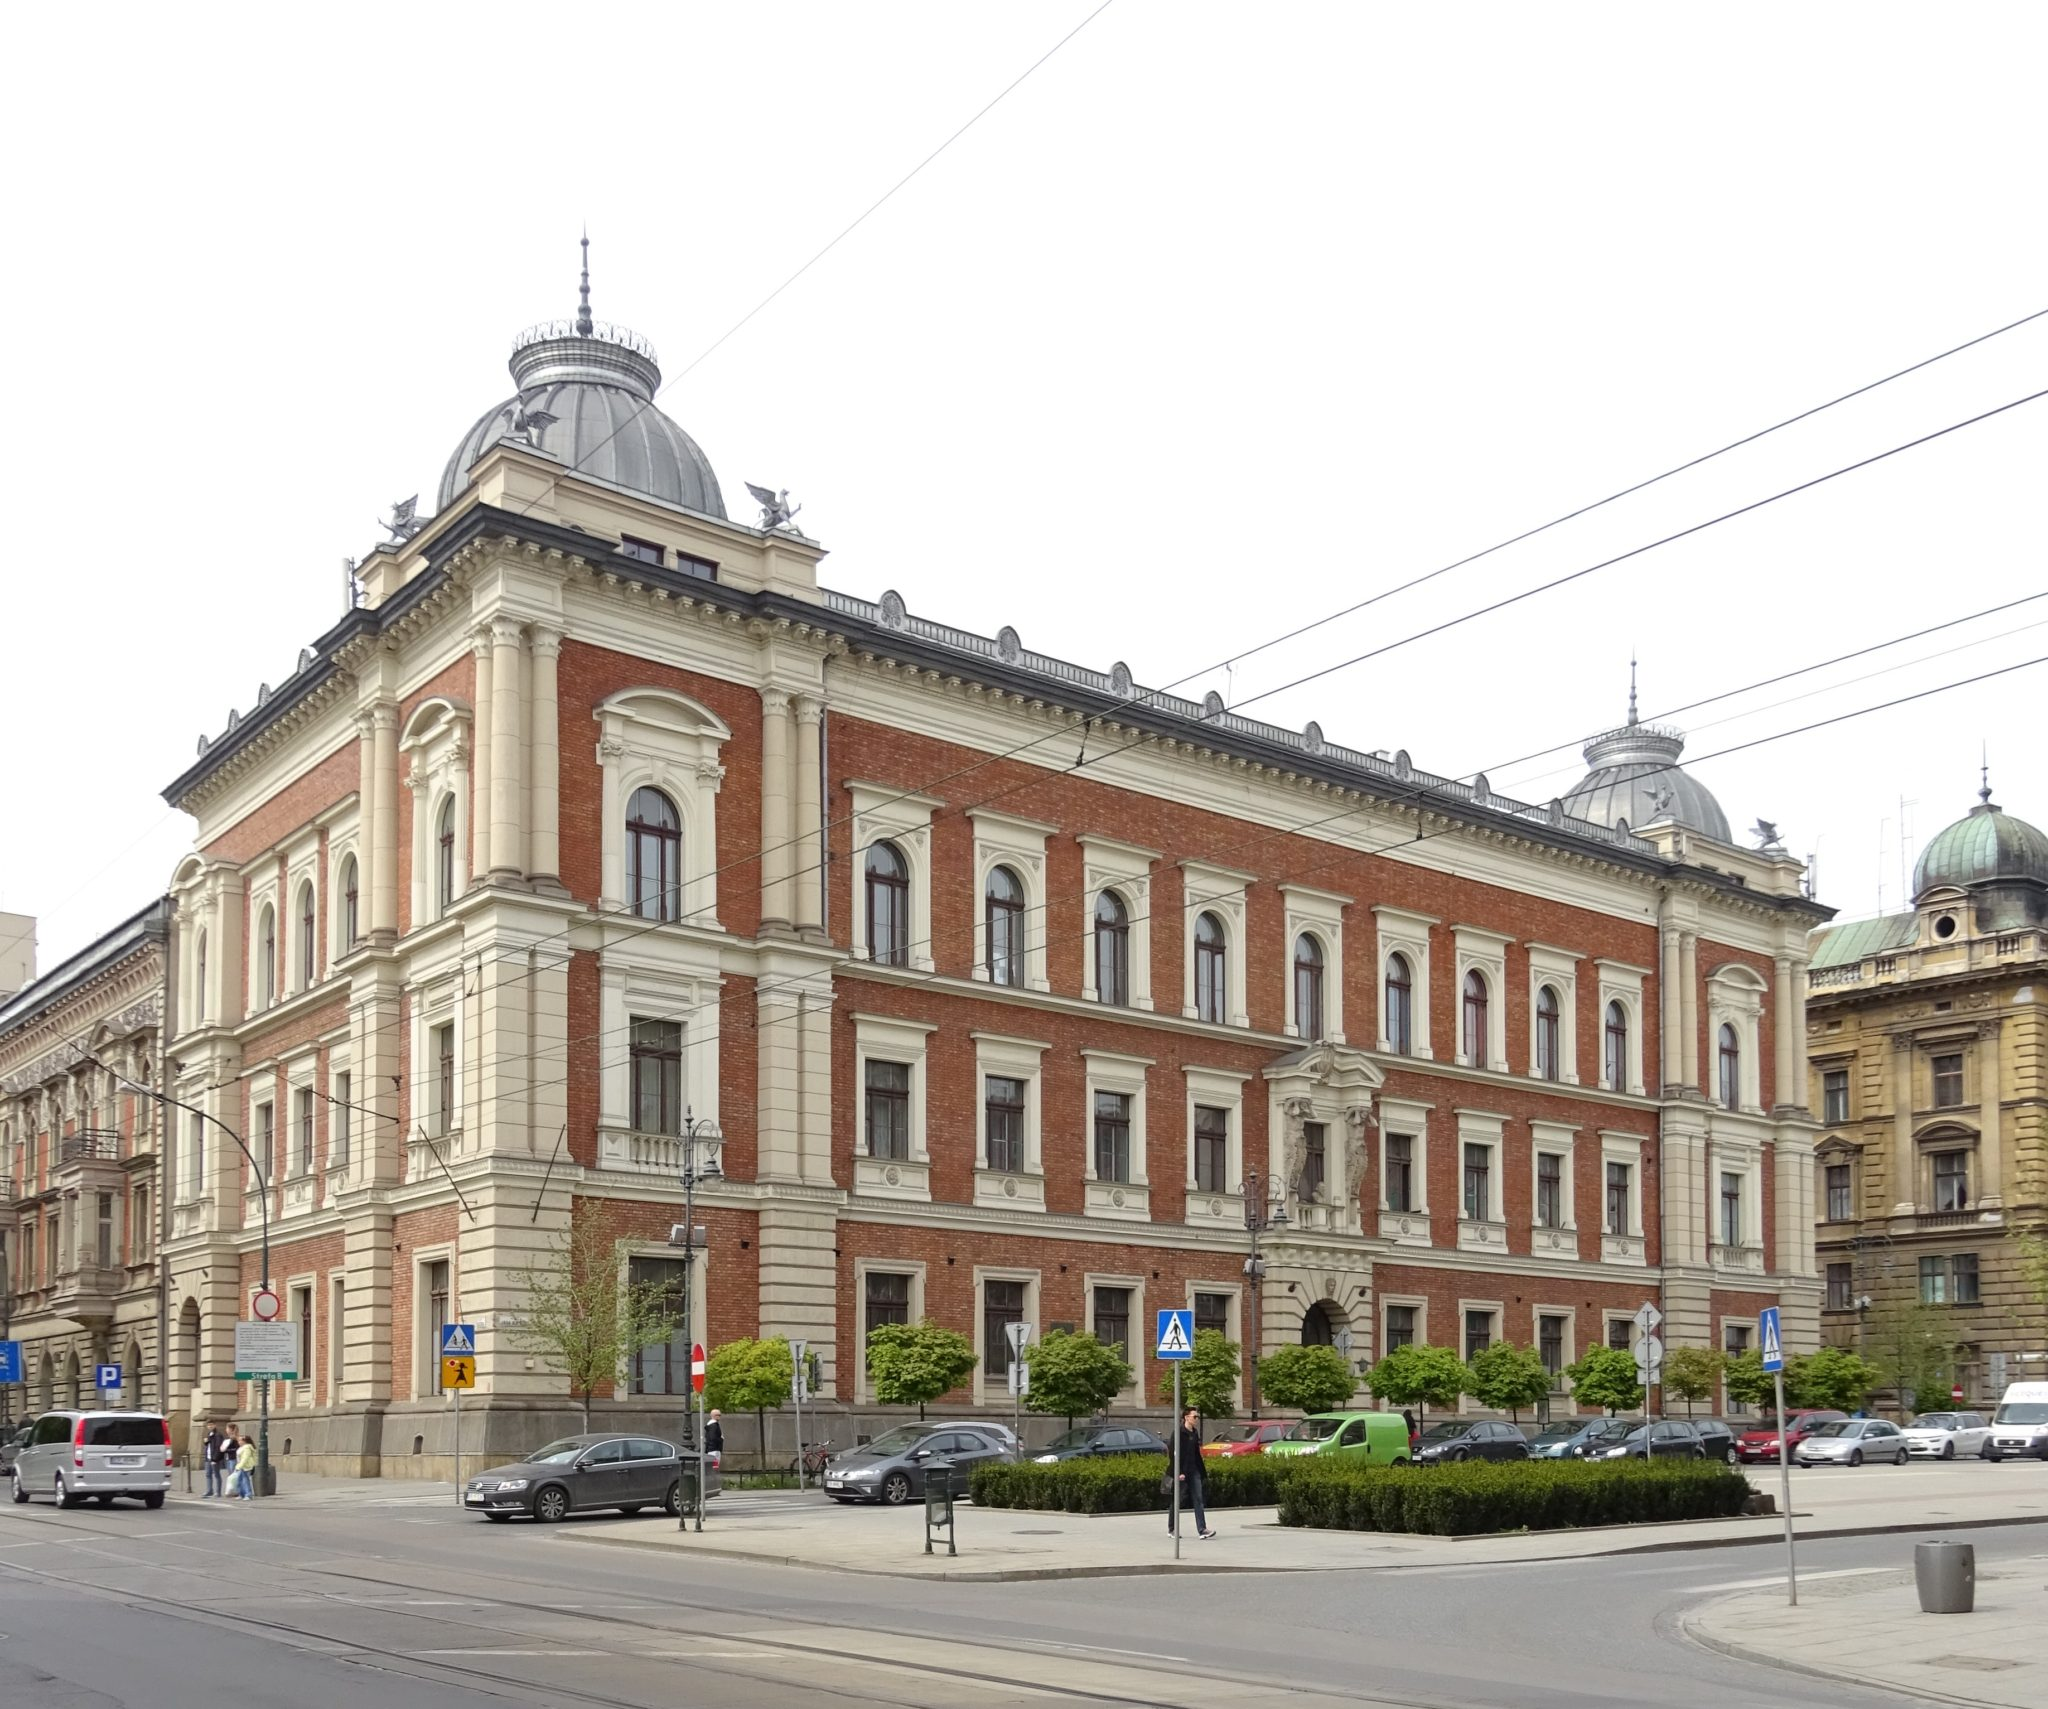 Main building of the Krakow Academy of Fine Arts, Jan Matejko Square